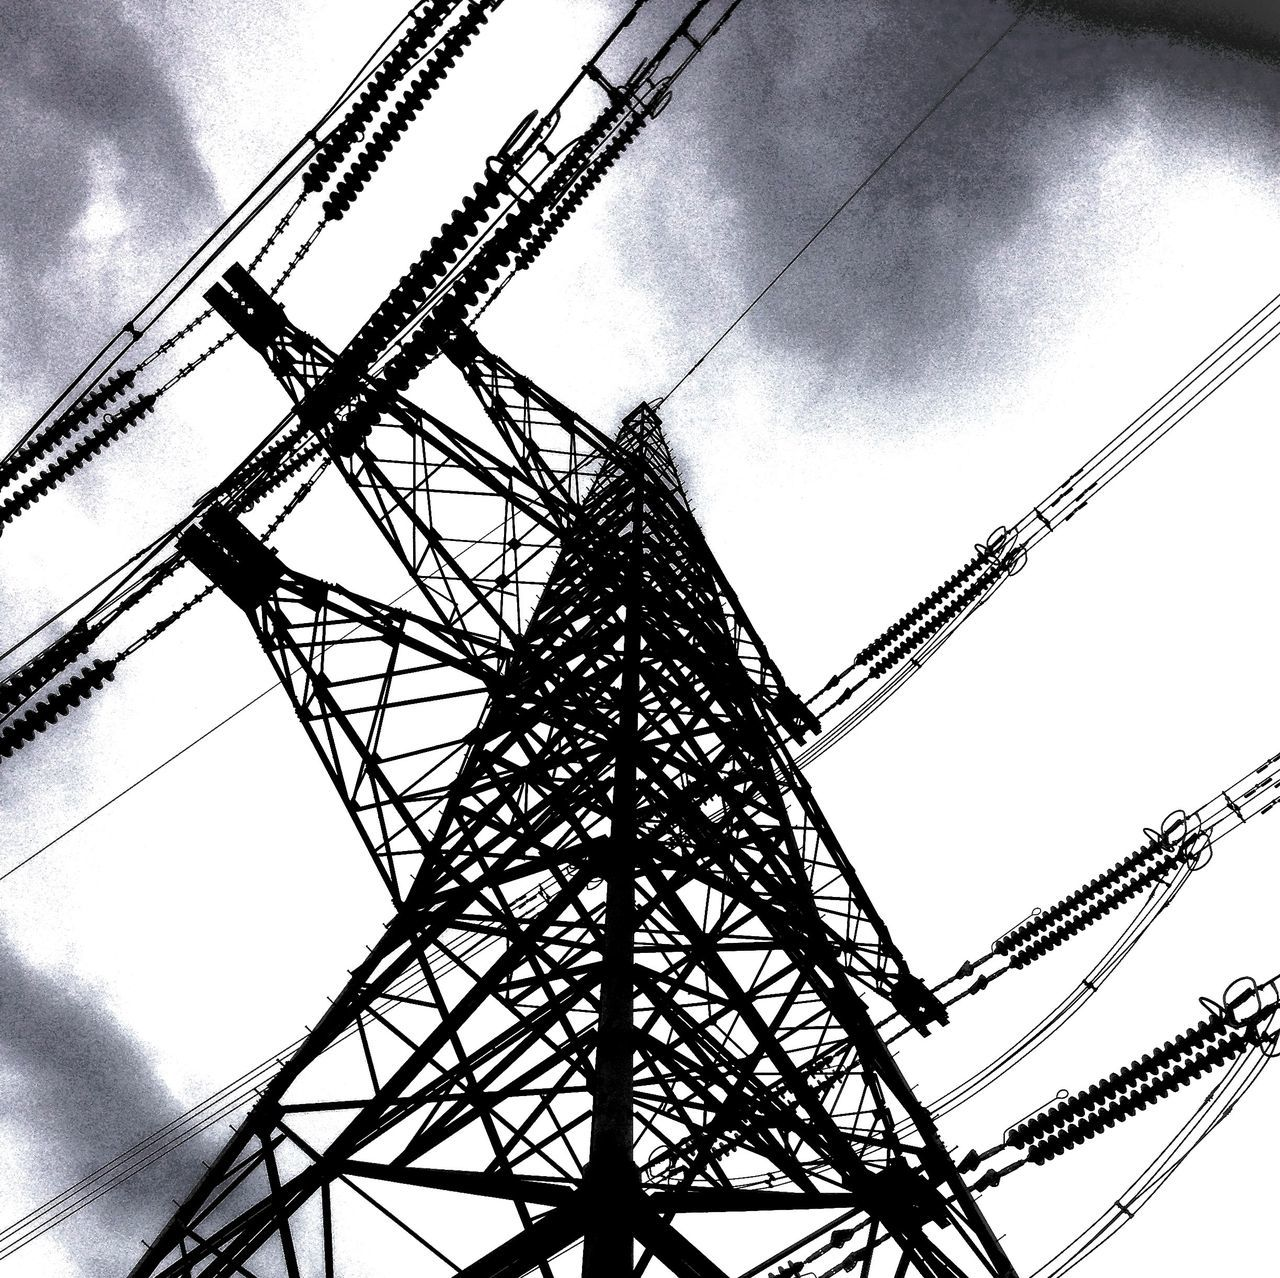 East Yorkshire IPhone Black And White Snapseed Wolds Photoshoptouch Pylon Electricity  Grid IPS2015Architecture Urban Geometry IPS2016Composition